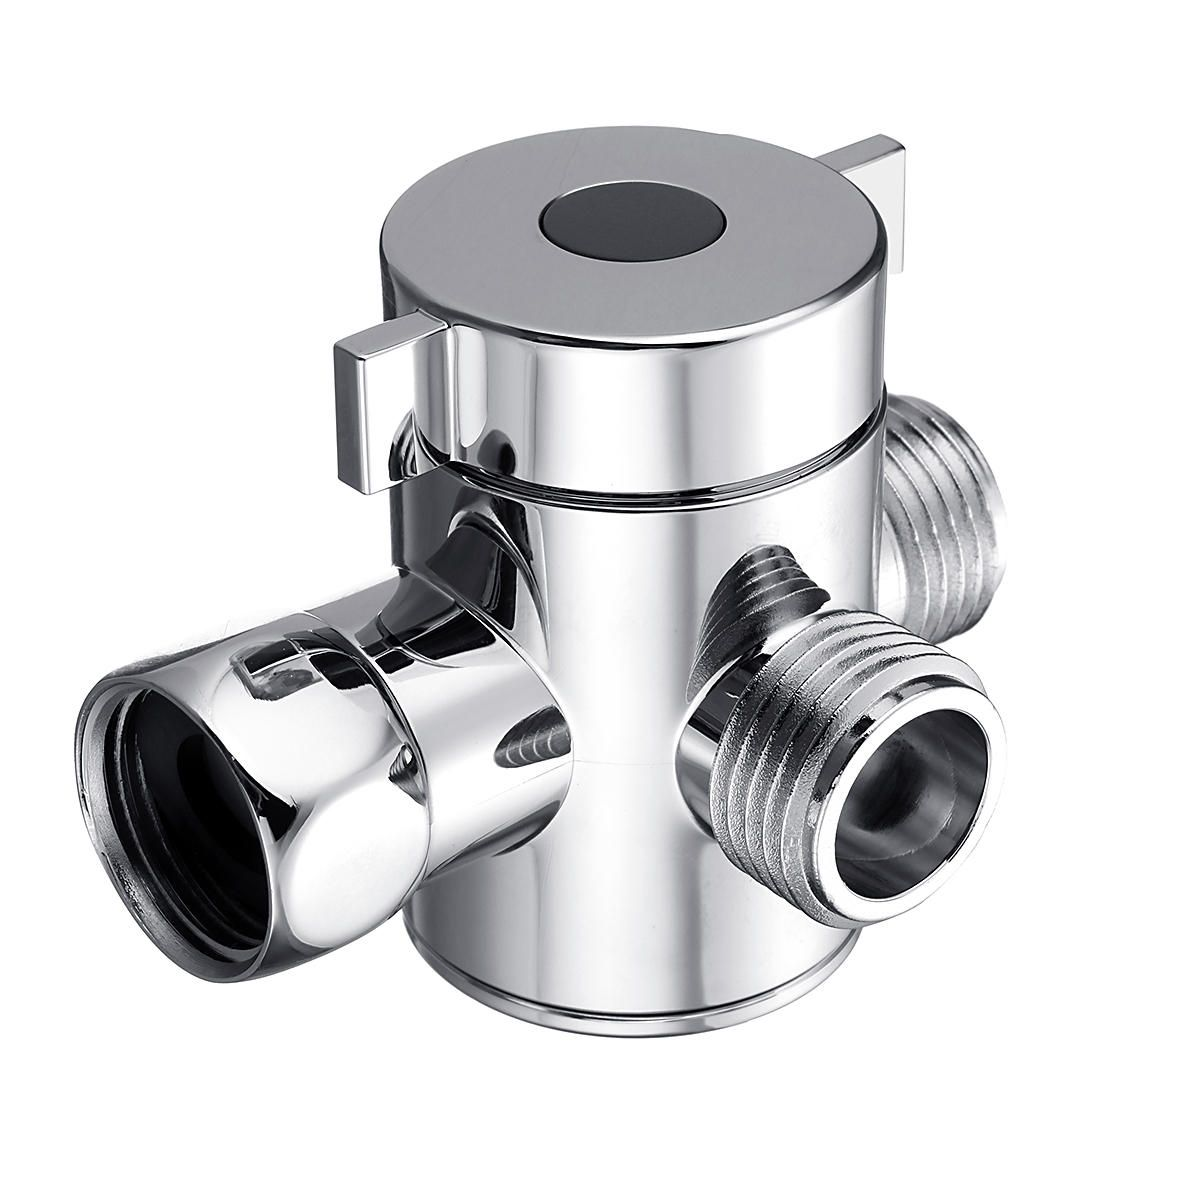 Multifunction 3 Way Shower Head Diverter Valve G1 2 Three